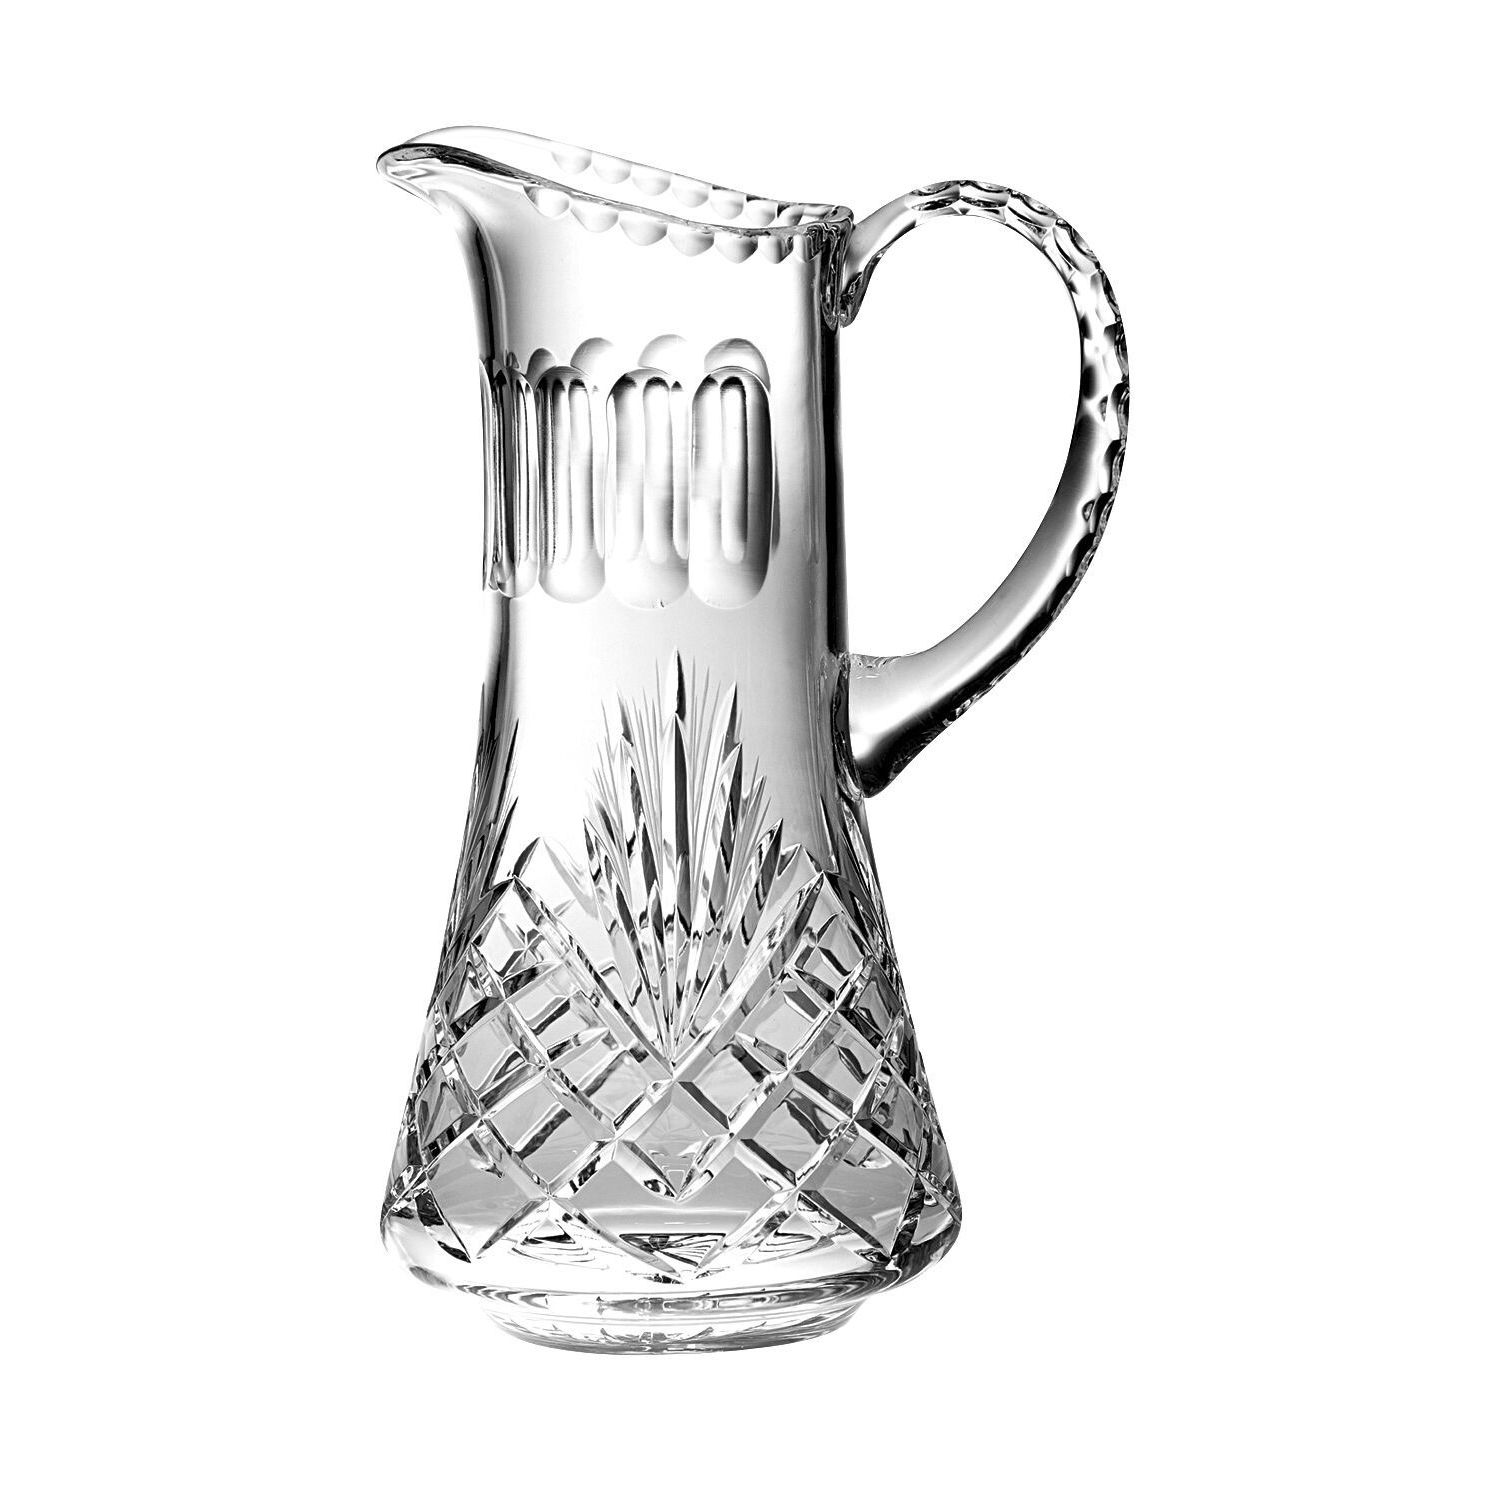 Majestic Gifts Hand Cut Mouth Blown Crystal Pitcher 54oz 11 Height Made In Europe Overstock 20464030